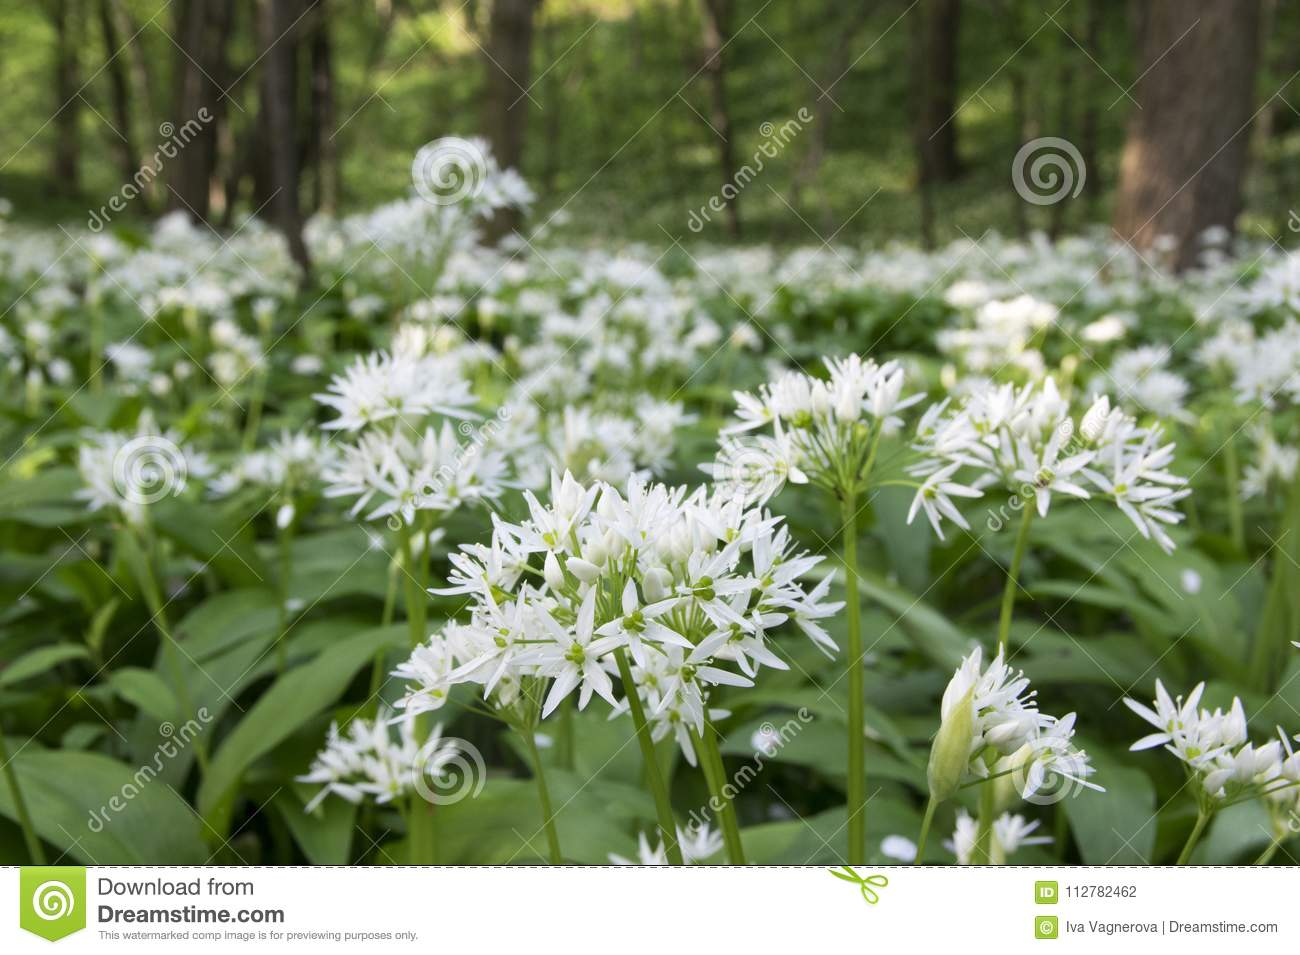 Allium ursinum bears garlic in bloom sunlight stock photo image allium ursinum bears garlic in bloom sunlight edible plant growing in forest blossom with white flowers in green foliage mightylinksfo